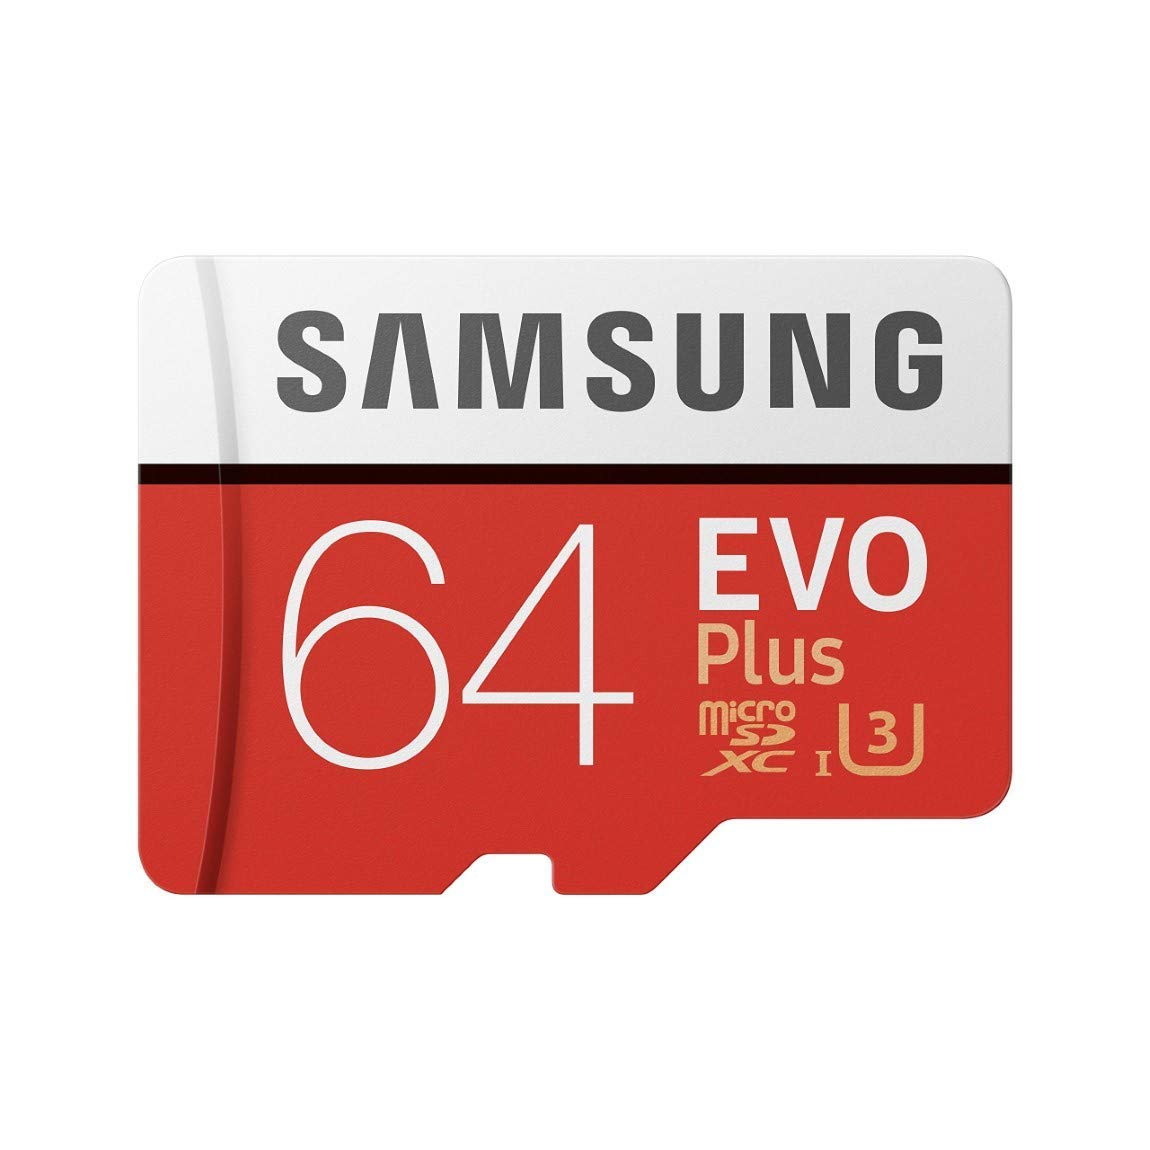 Samsung 64 GB Evo Plus MicroSD card with Adapter